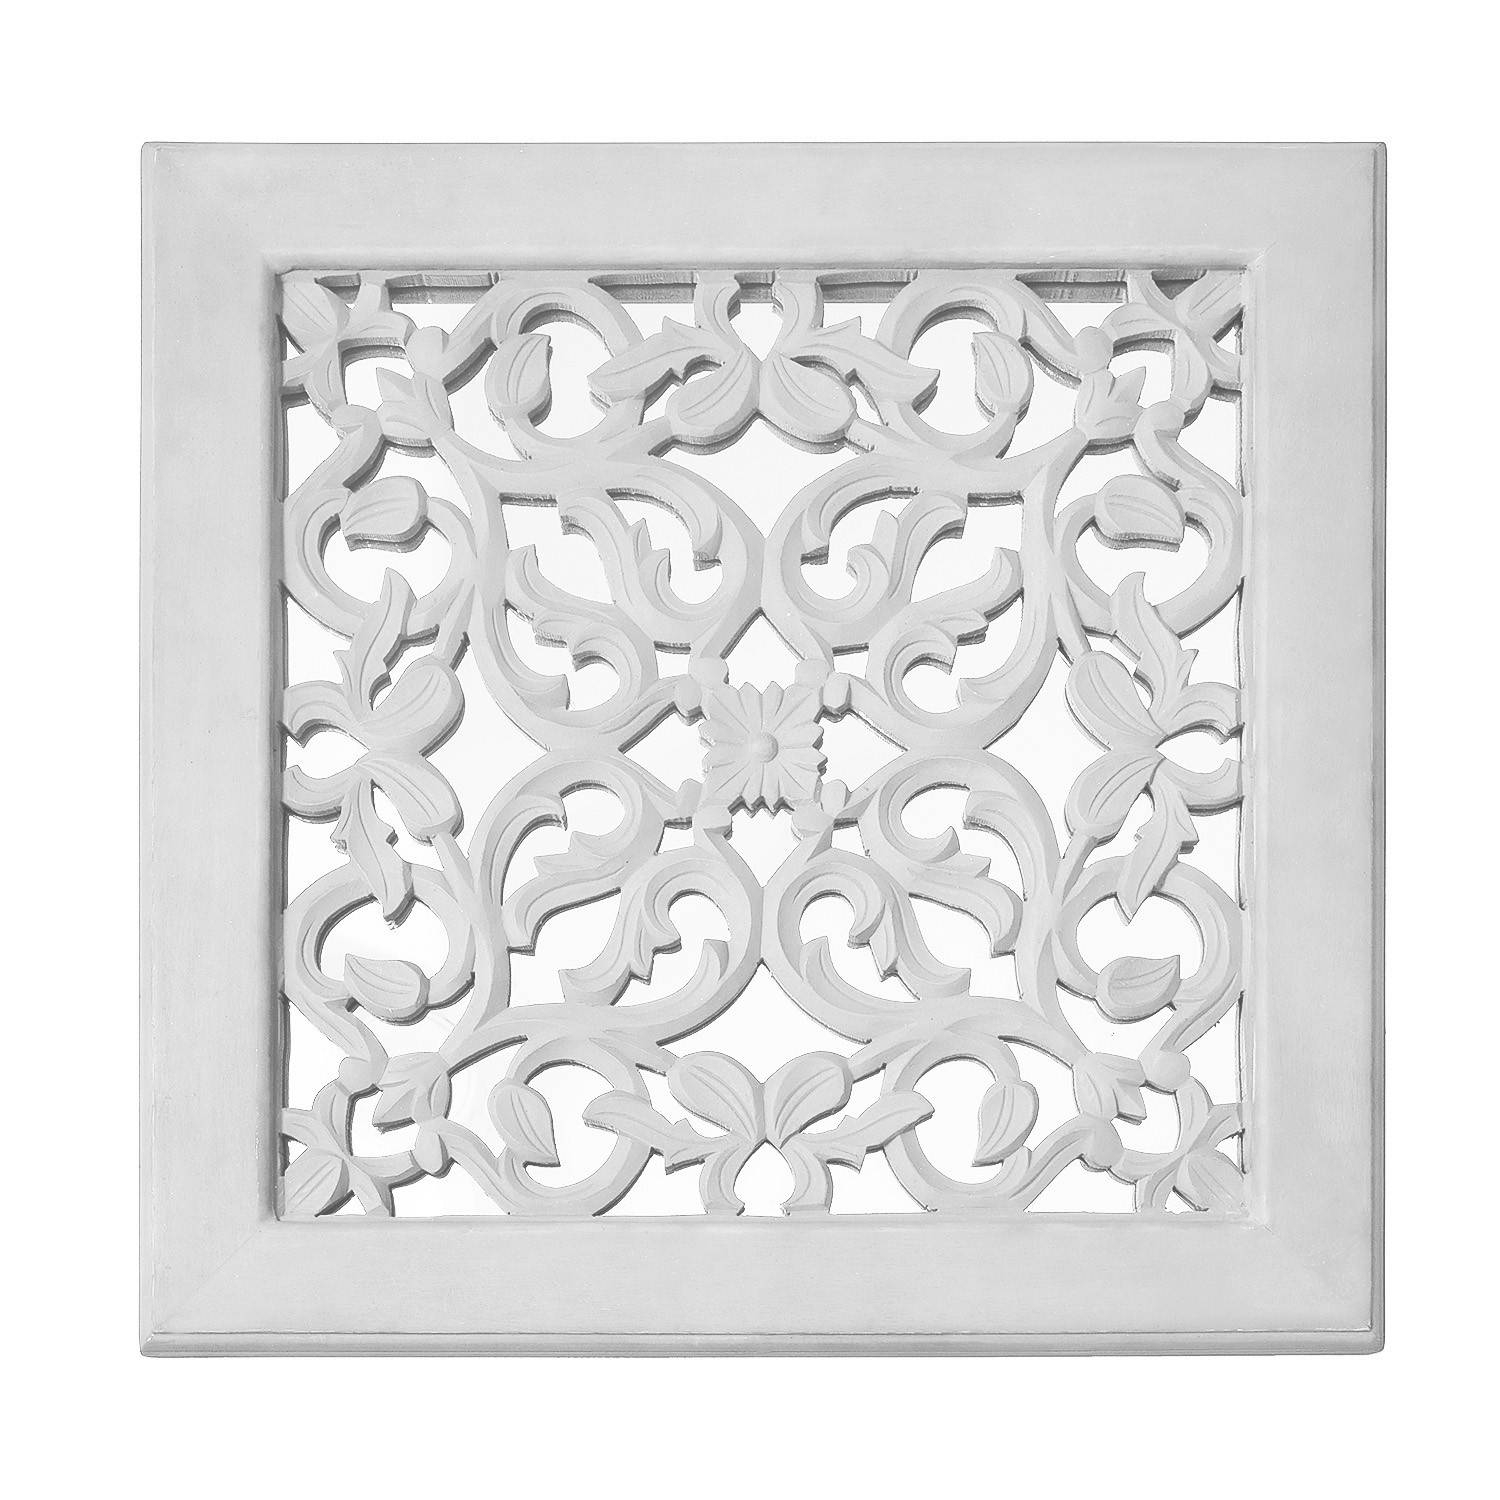 Fretwork Wall Art: White (set Of 3) | The Yellow Door Store Pertaining To Most Popular Fretwork Wall Art (View 9 of 25)